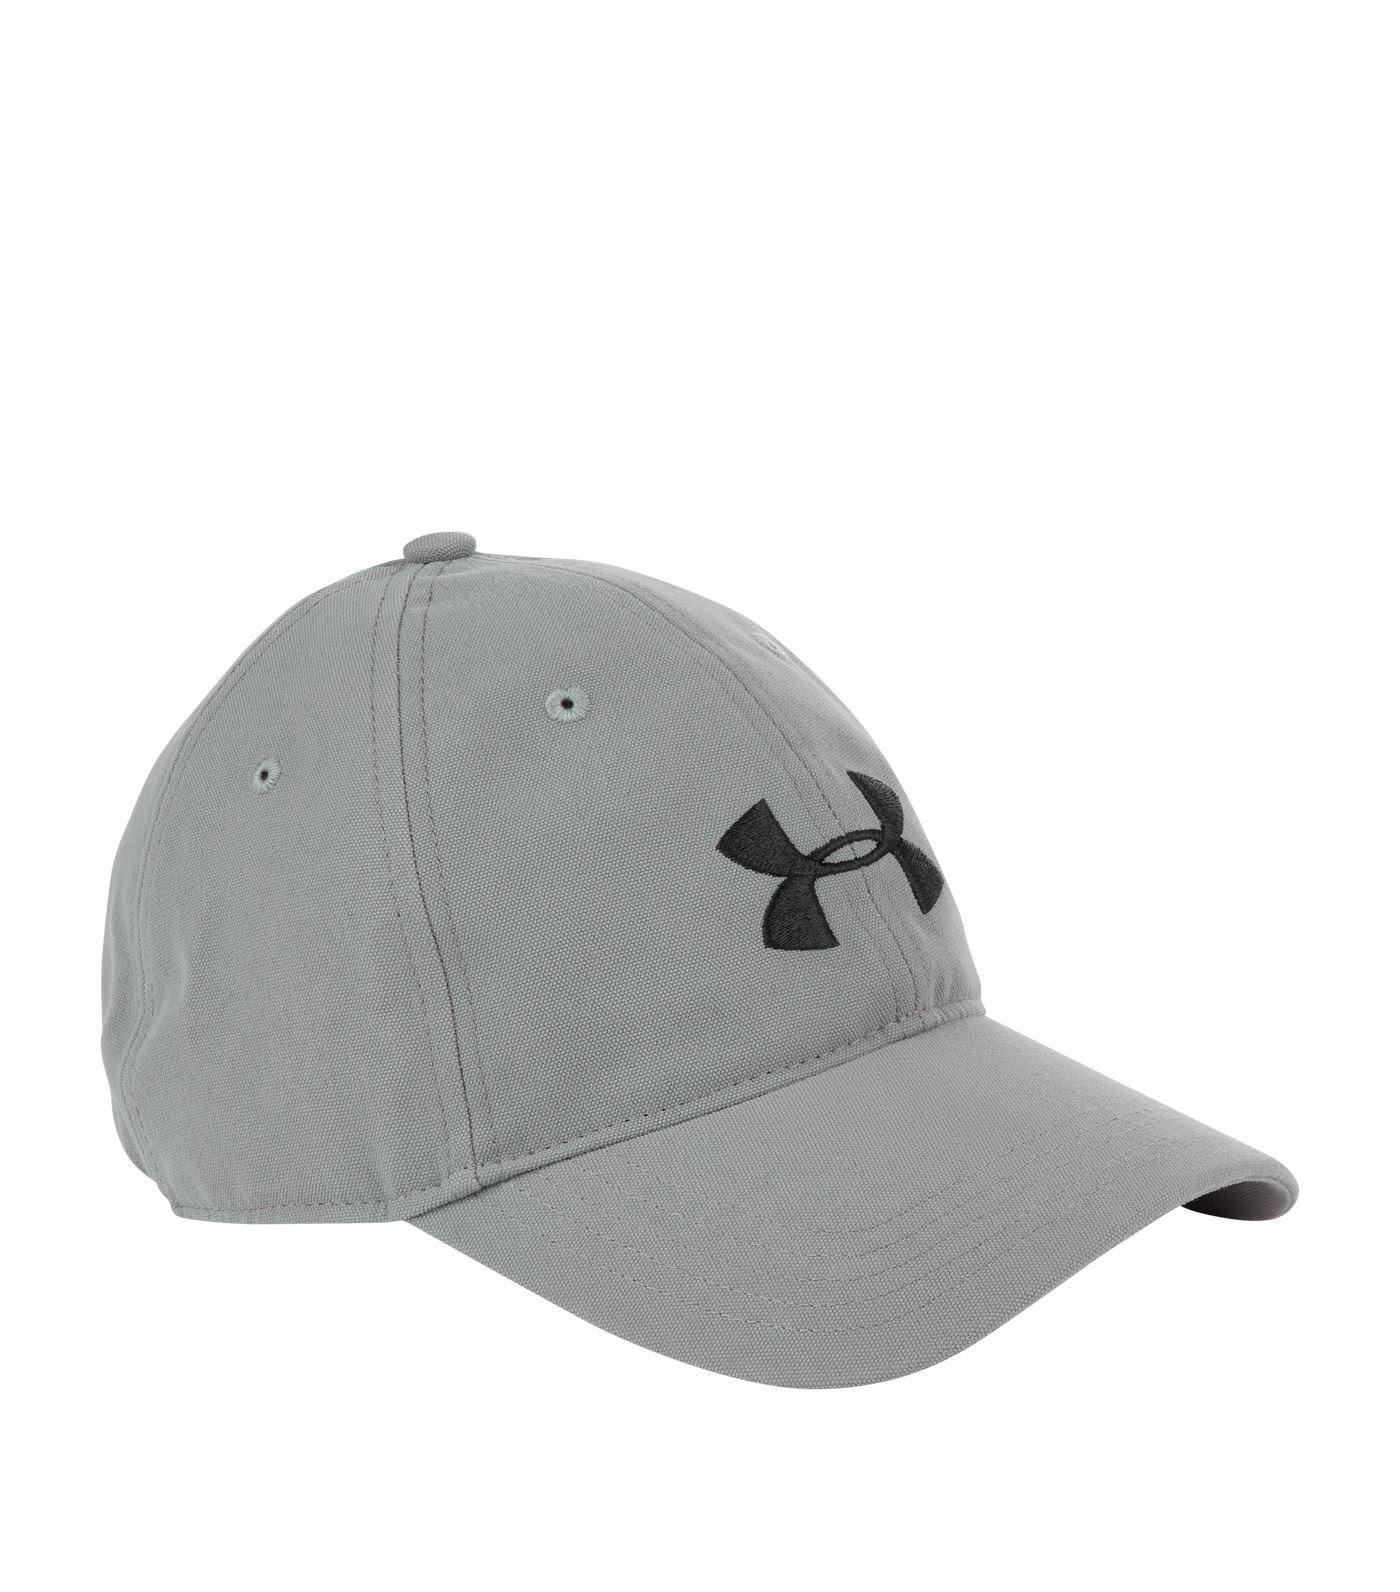 Lyst - Under Armour Core Canvas Dad Cap in Gray for Men 372fd8aa00b2